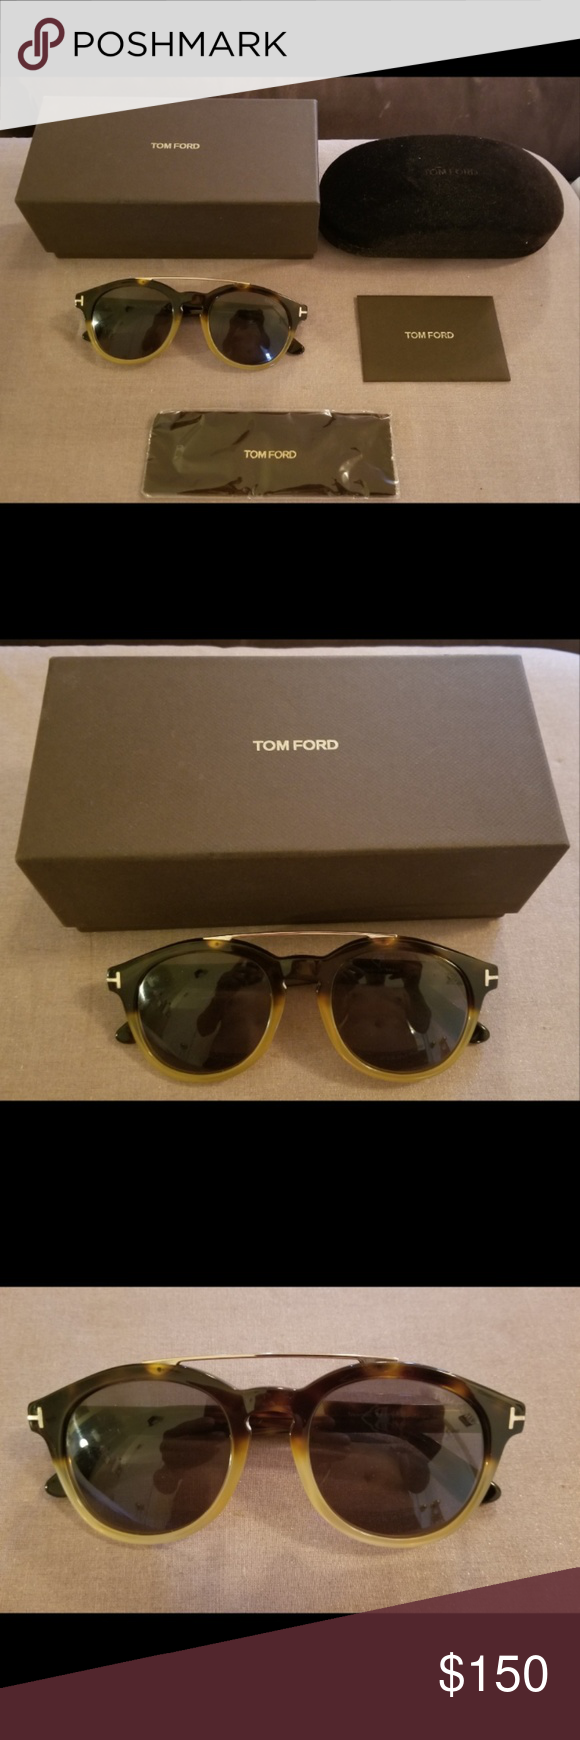 f8d79e5139 Tom Ford Newman Unisex Sunglasses Up for sale is a pair of Tom Ford Newman  Unisex